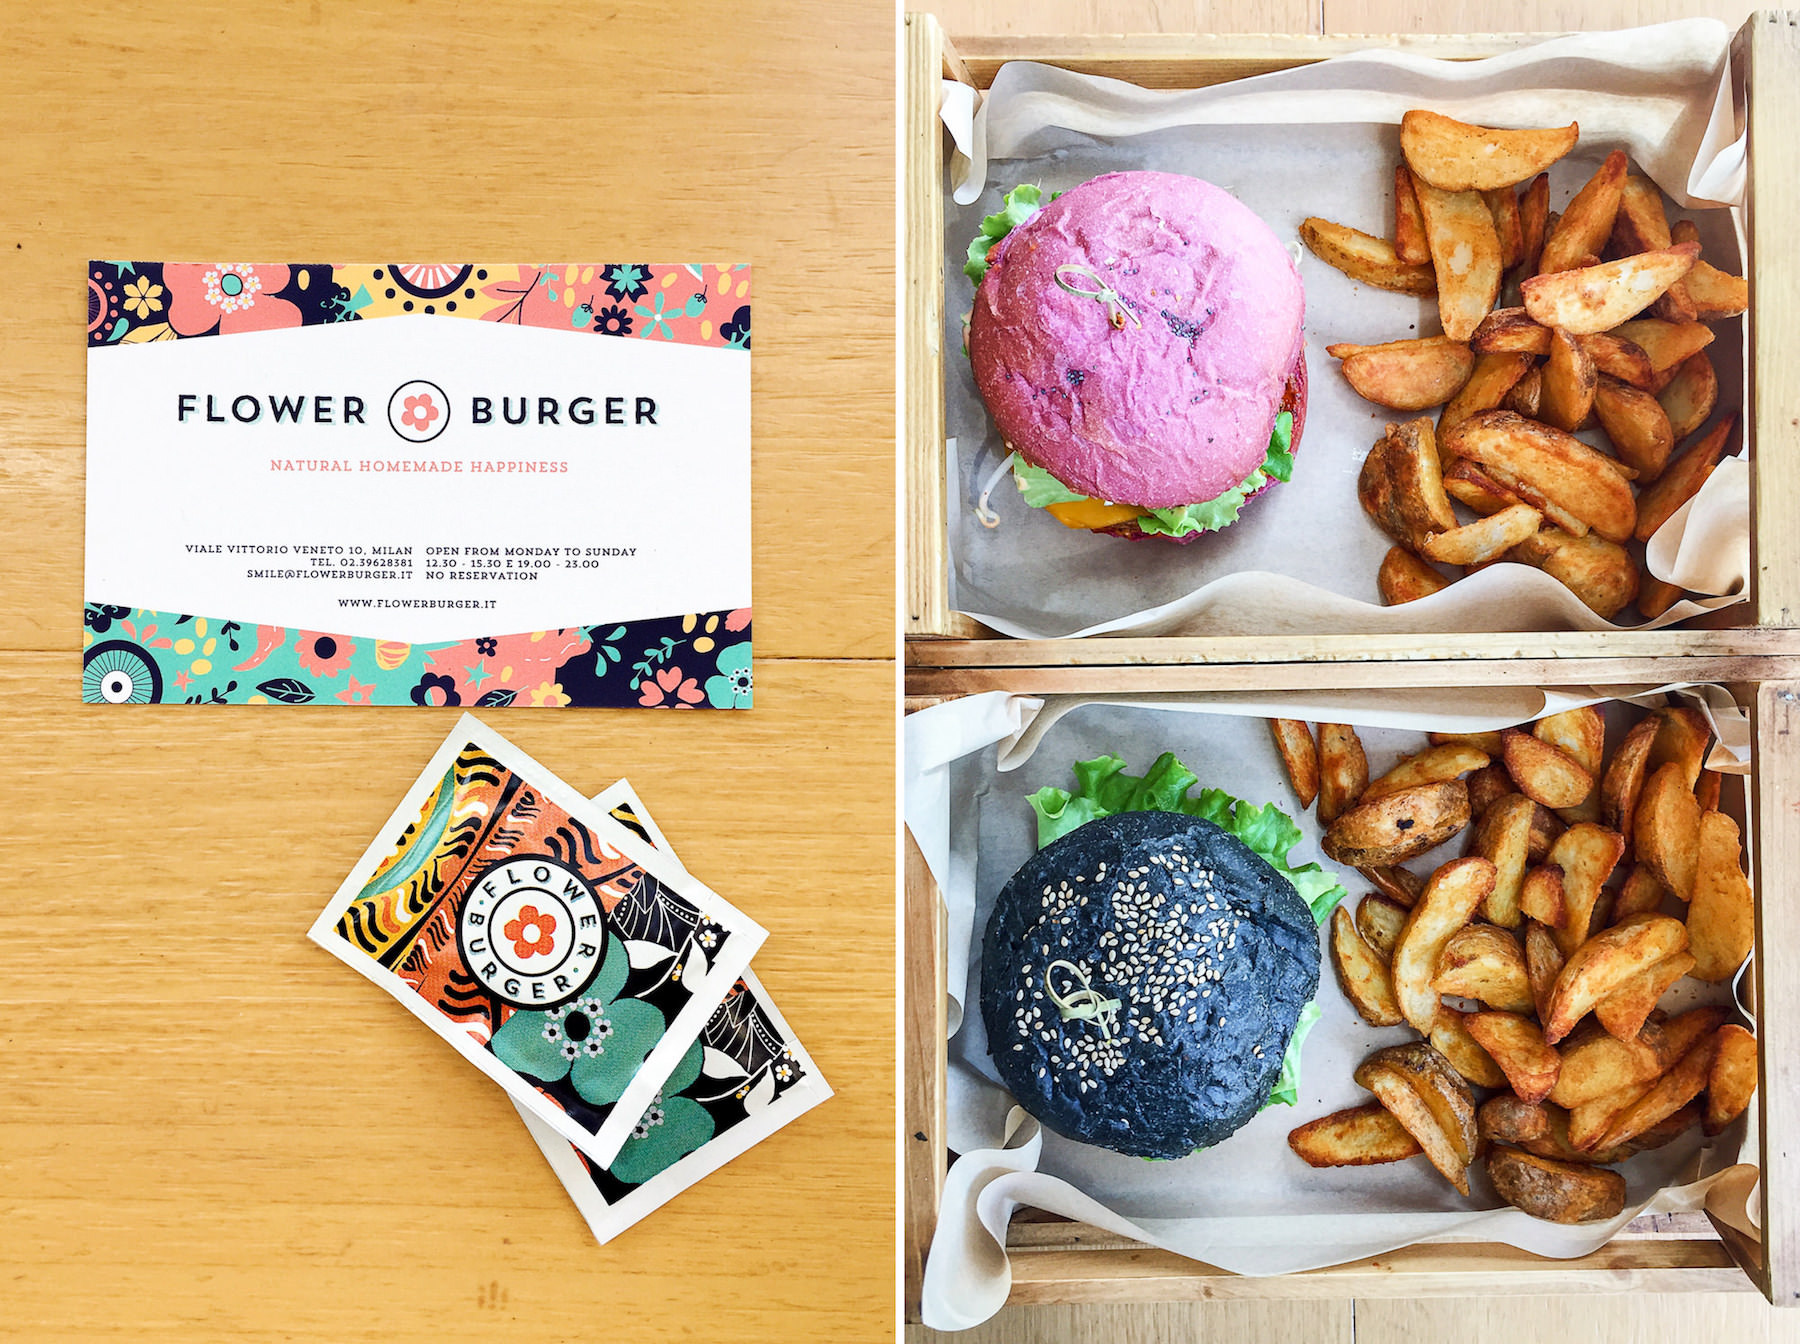 Turin: Flower Burger